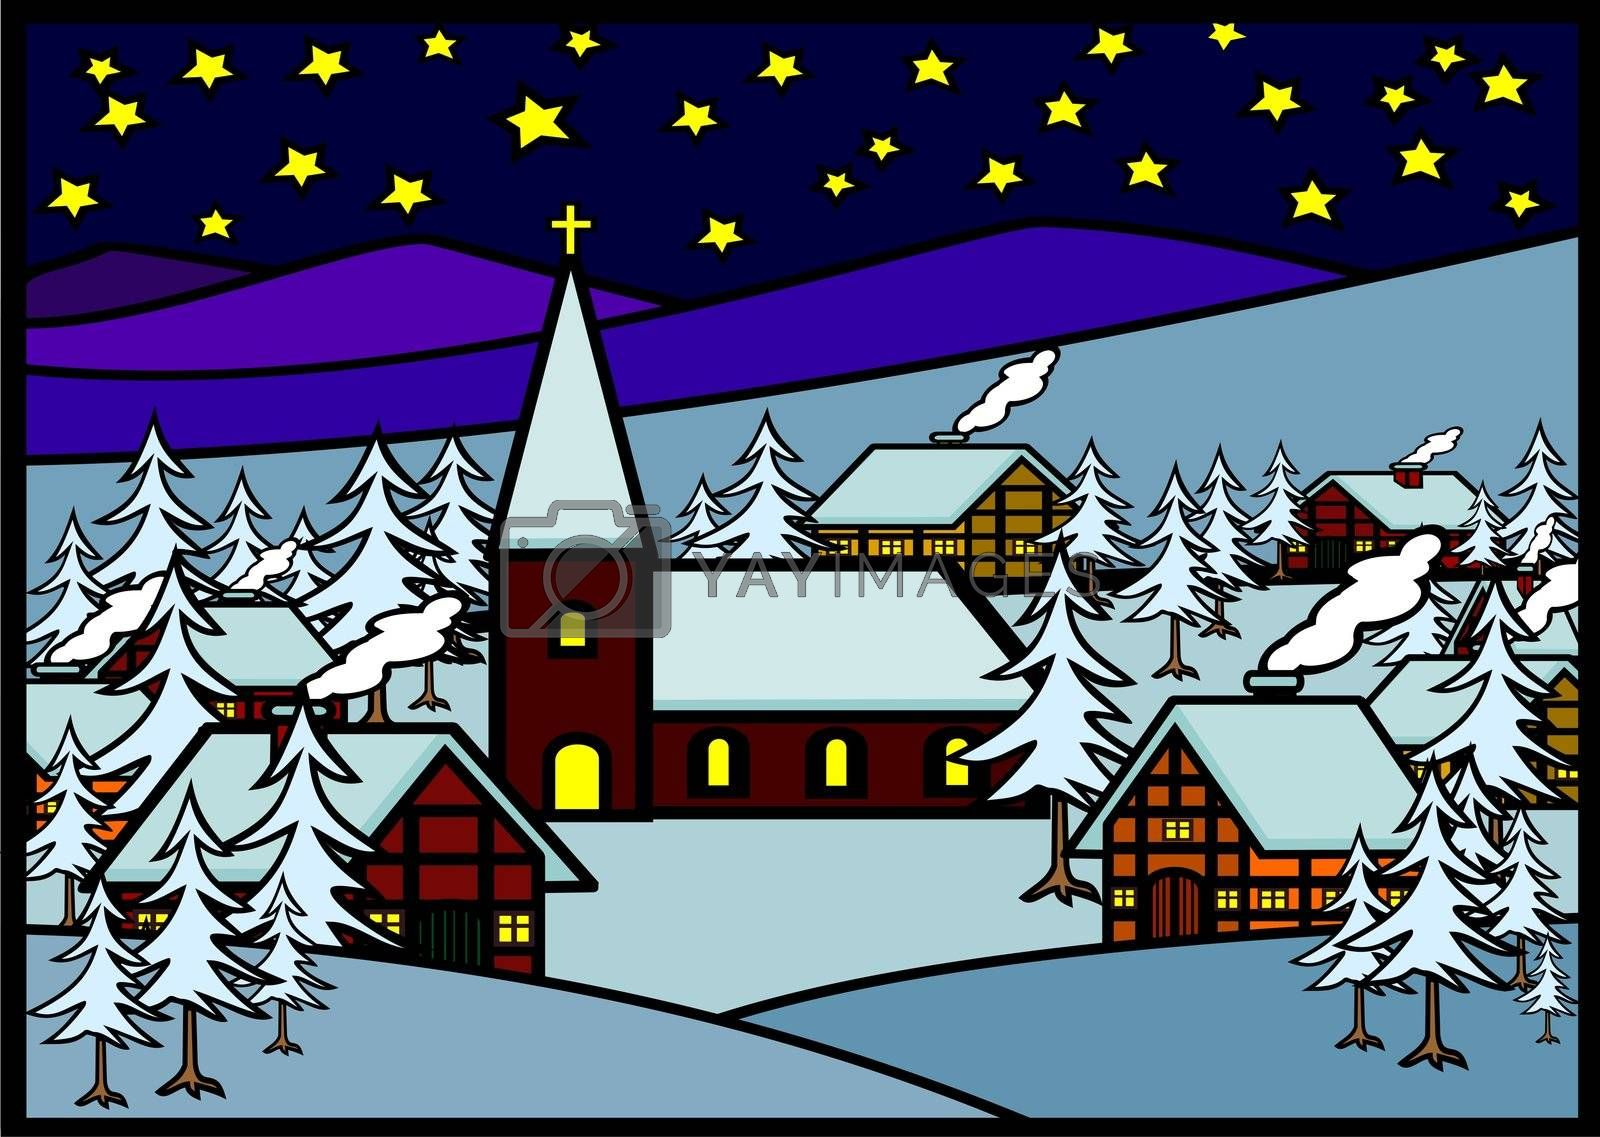 Christmas Village in a Snowy Landscape